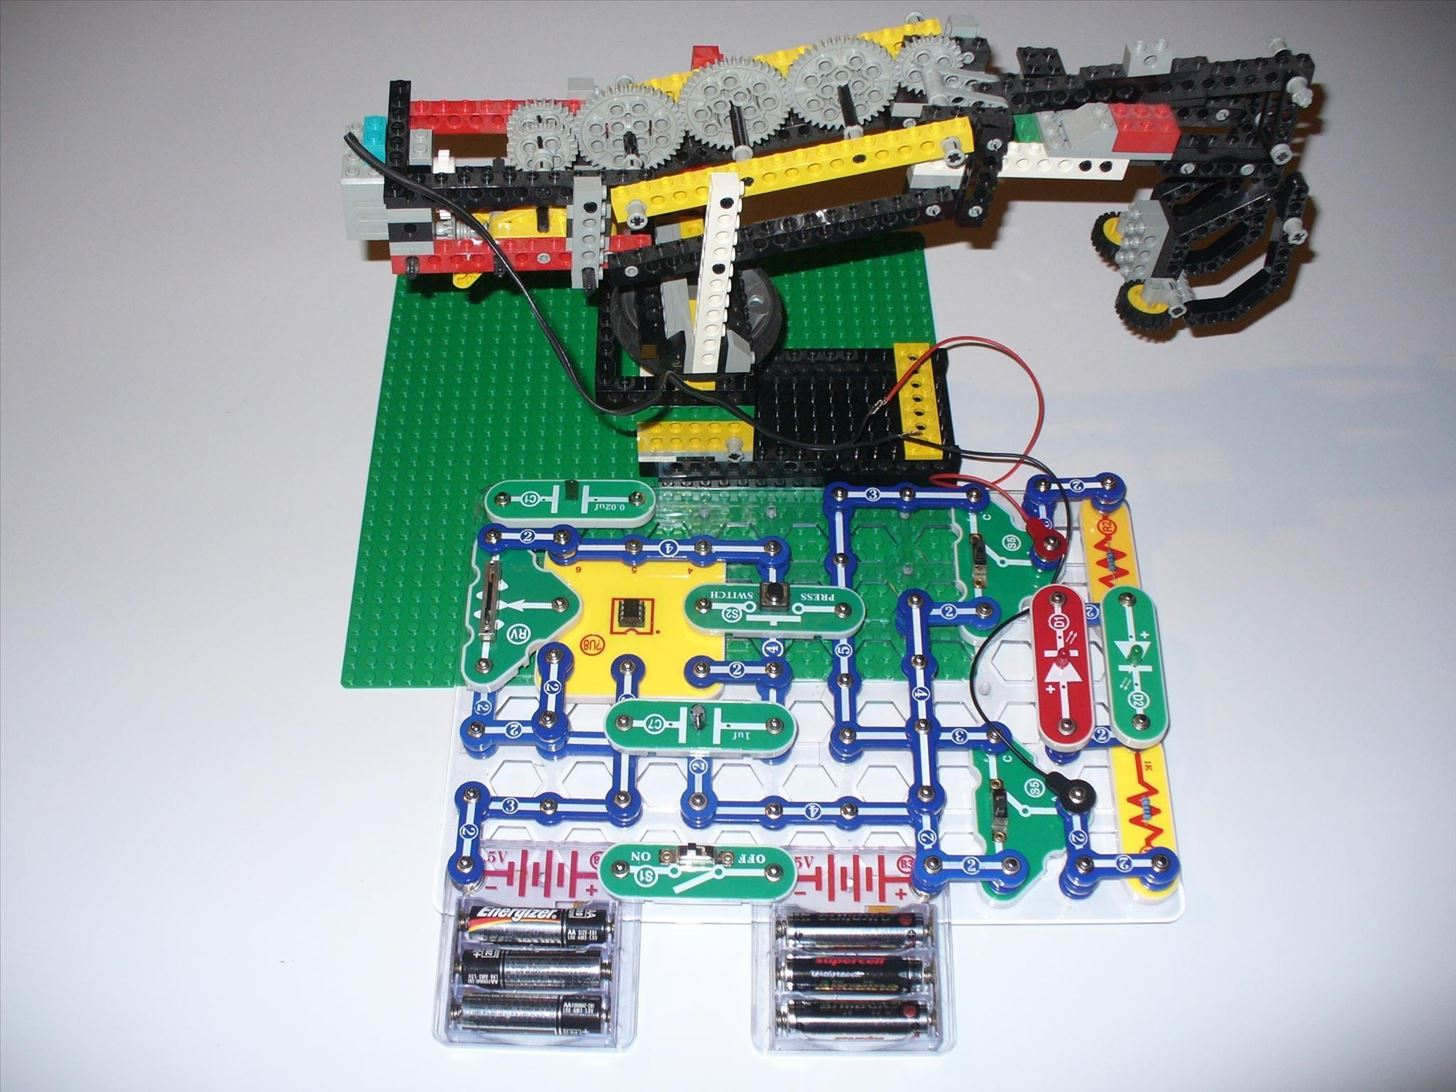 555 Timer Hacks: Cable Testers, Magnetic Stirrers, and Lego Grabbers Oh My!